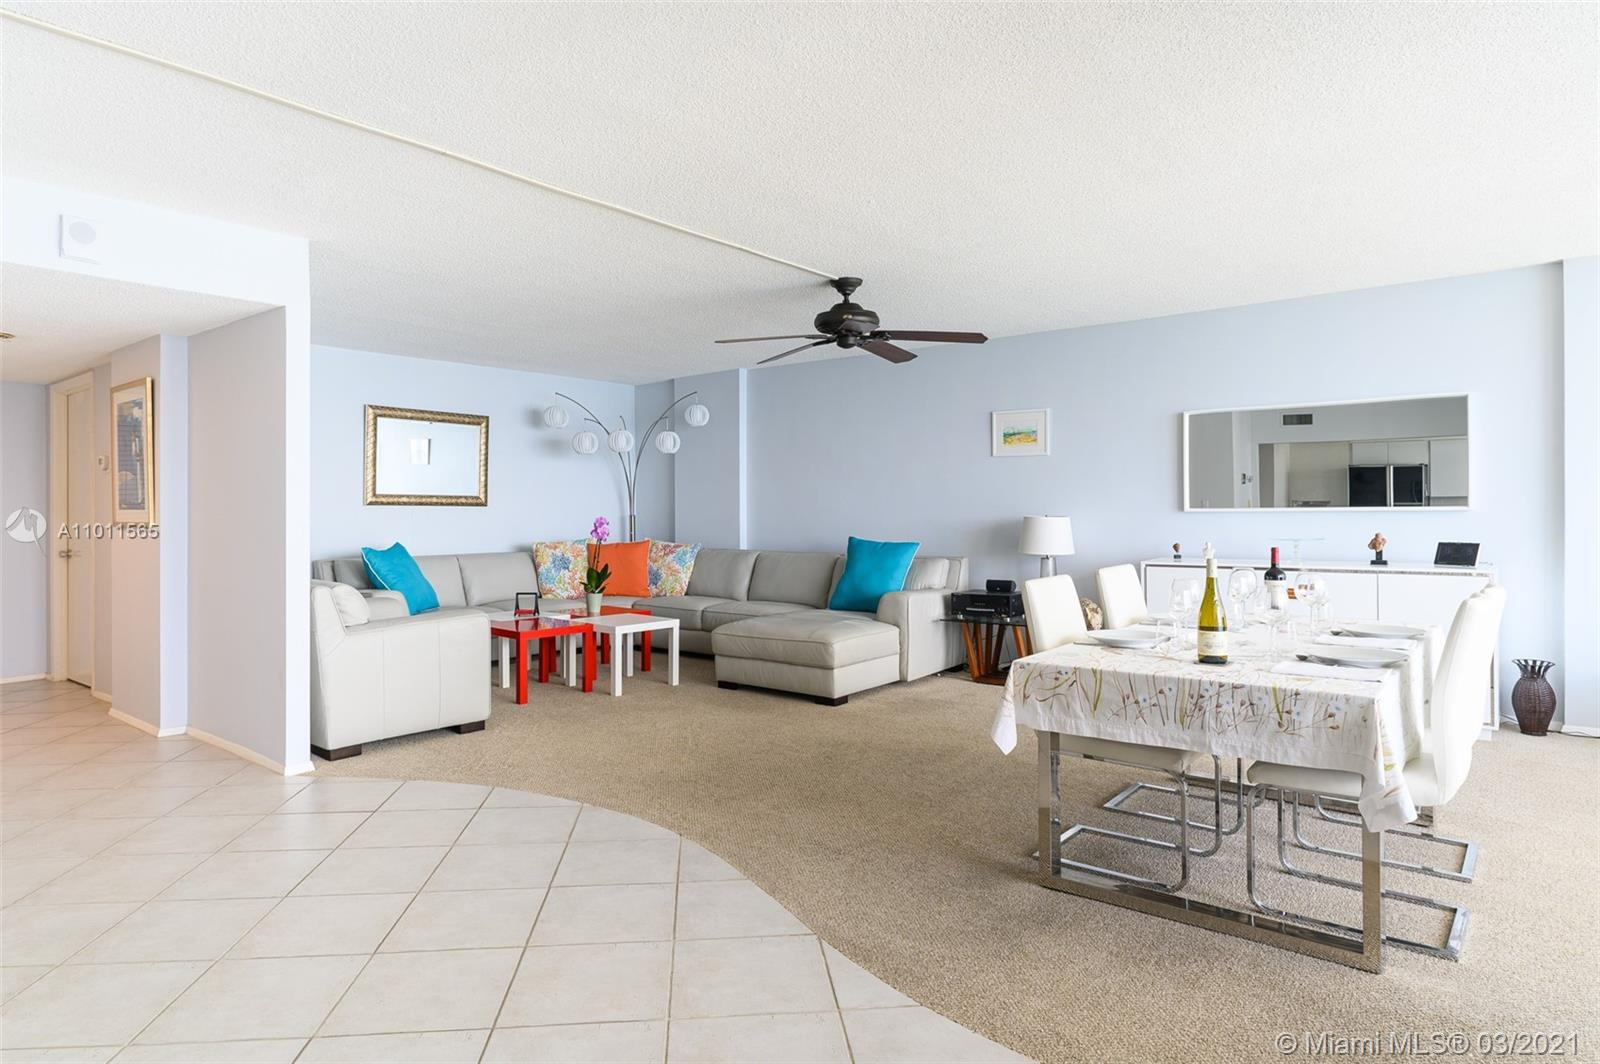 ON THE BEACH !!! RARE AND LARGE 1BR /1.5 BATH + BALCONY WITH AMAZING OCEAN VIEWS FROM THE KITCHEN, L